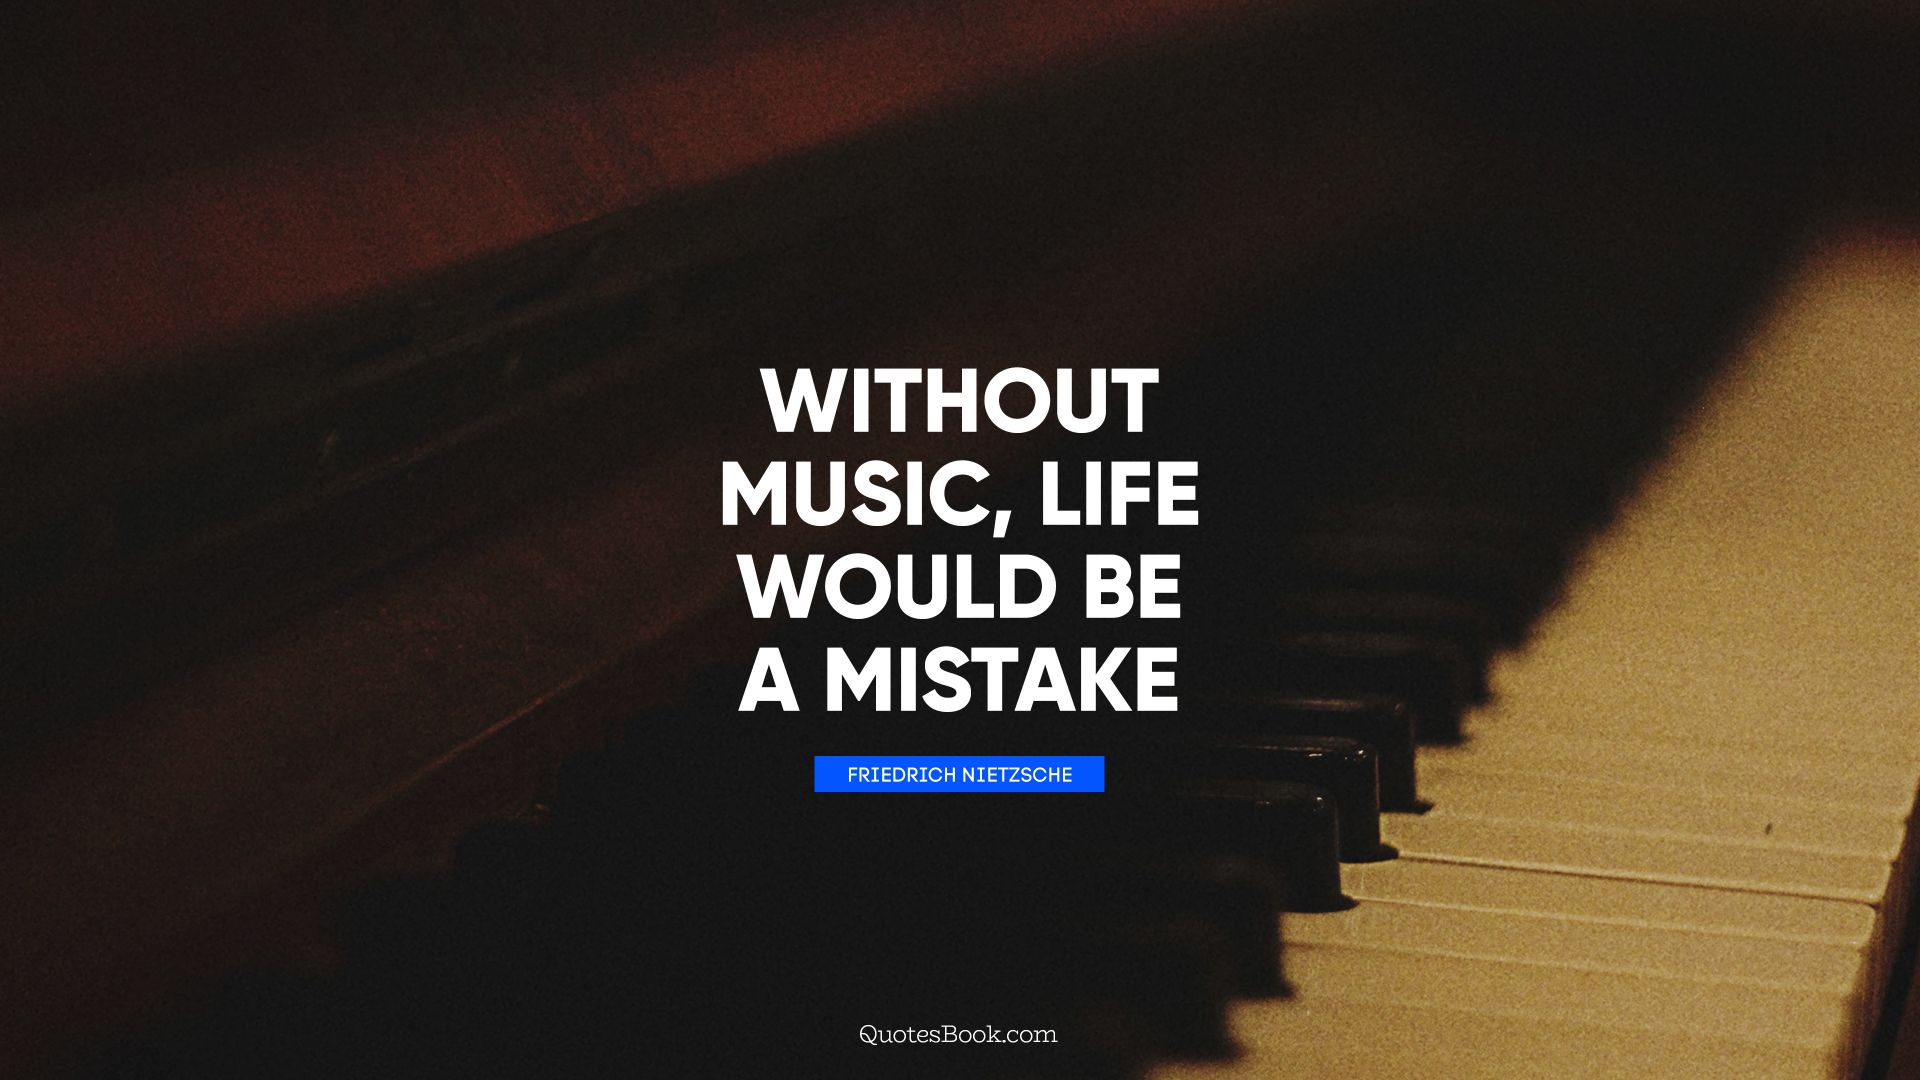 Without music life would be a mistake quote by friedrich nietzsche